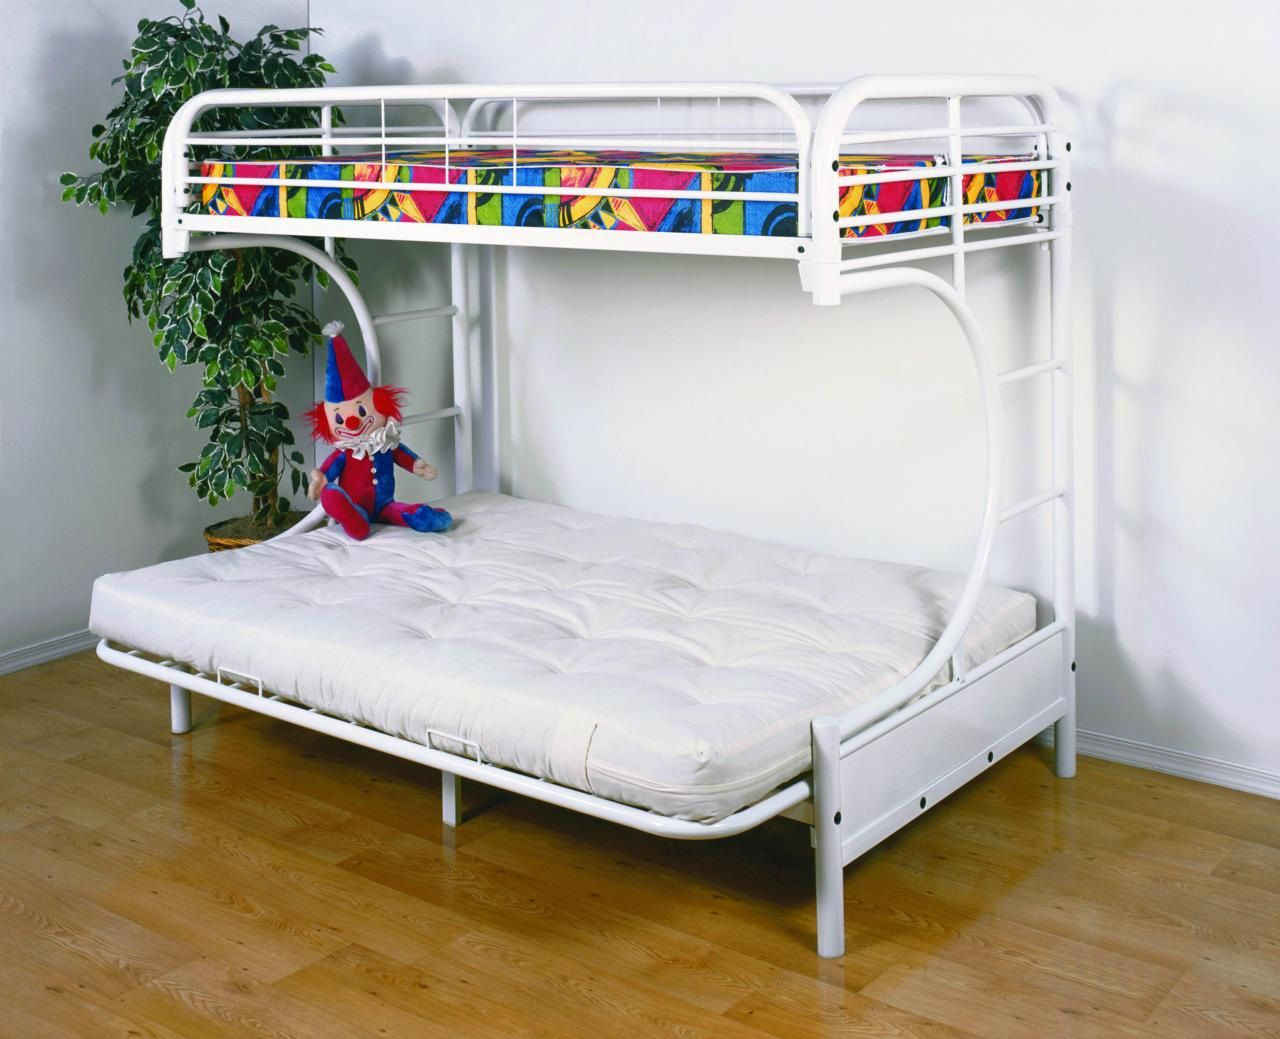 50 cheap bunk beds for sale with mattress interior designs for